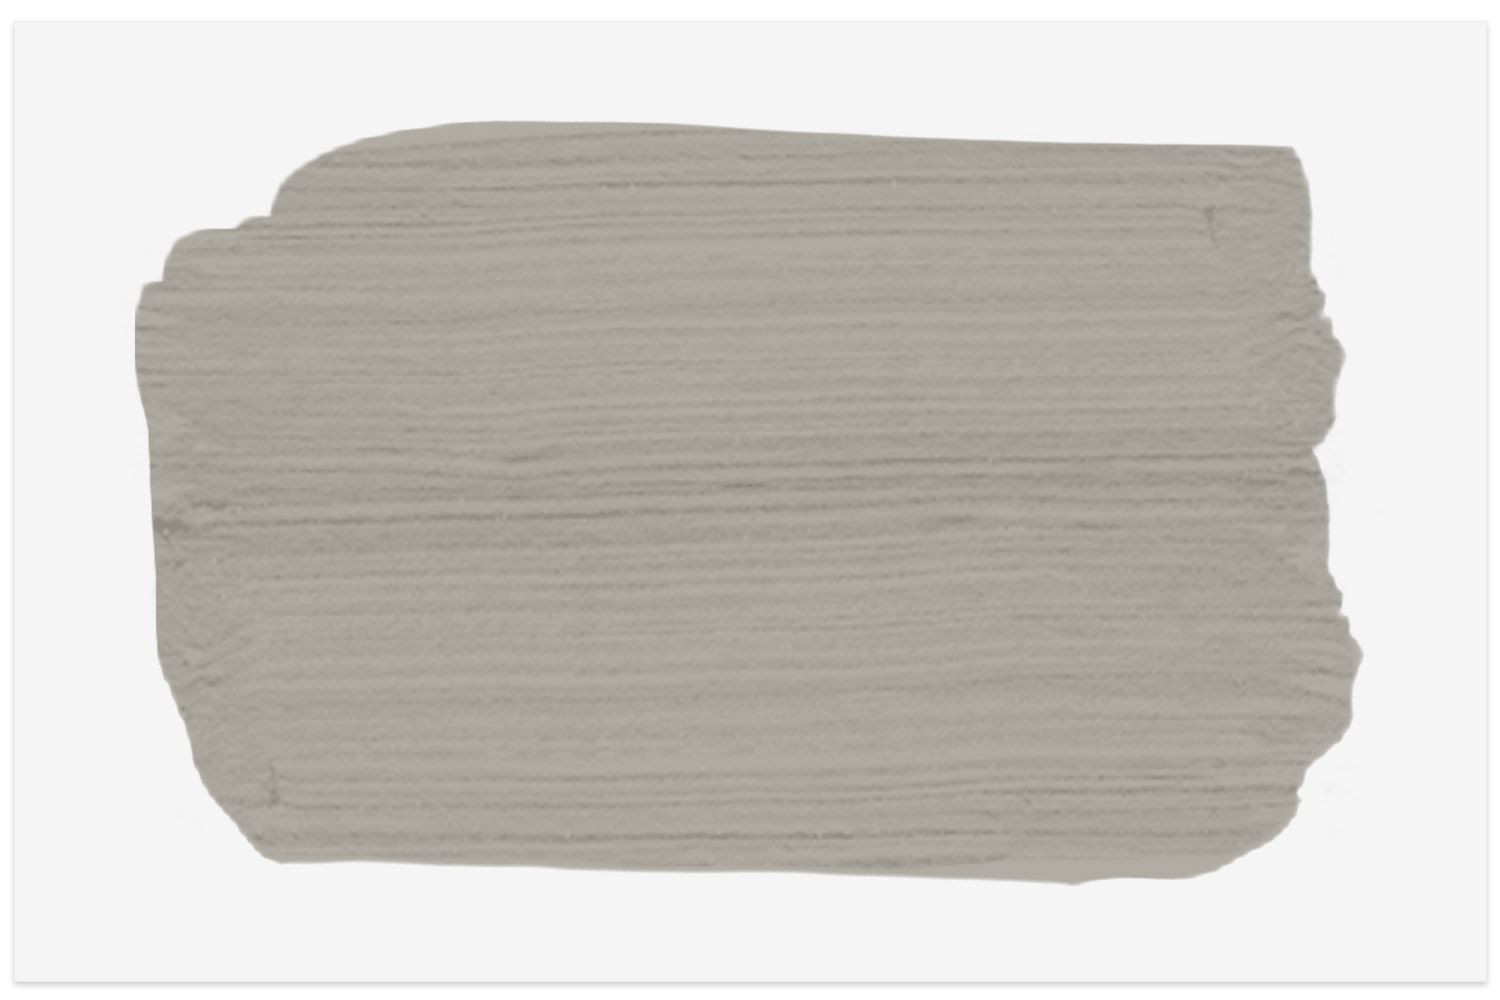 Granite Boulder 790D-4 paint swatch from Behr